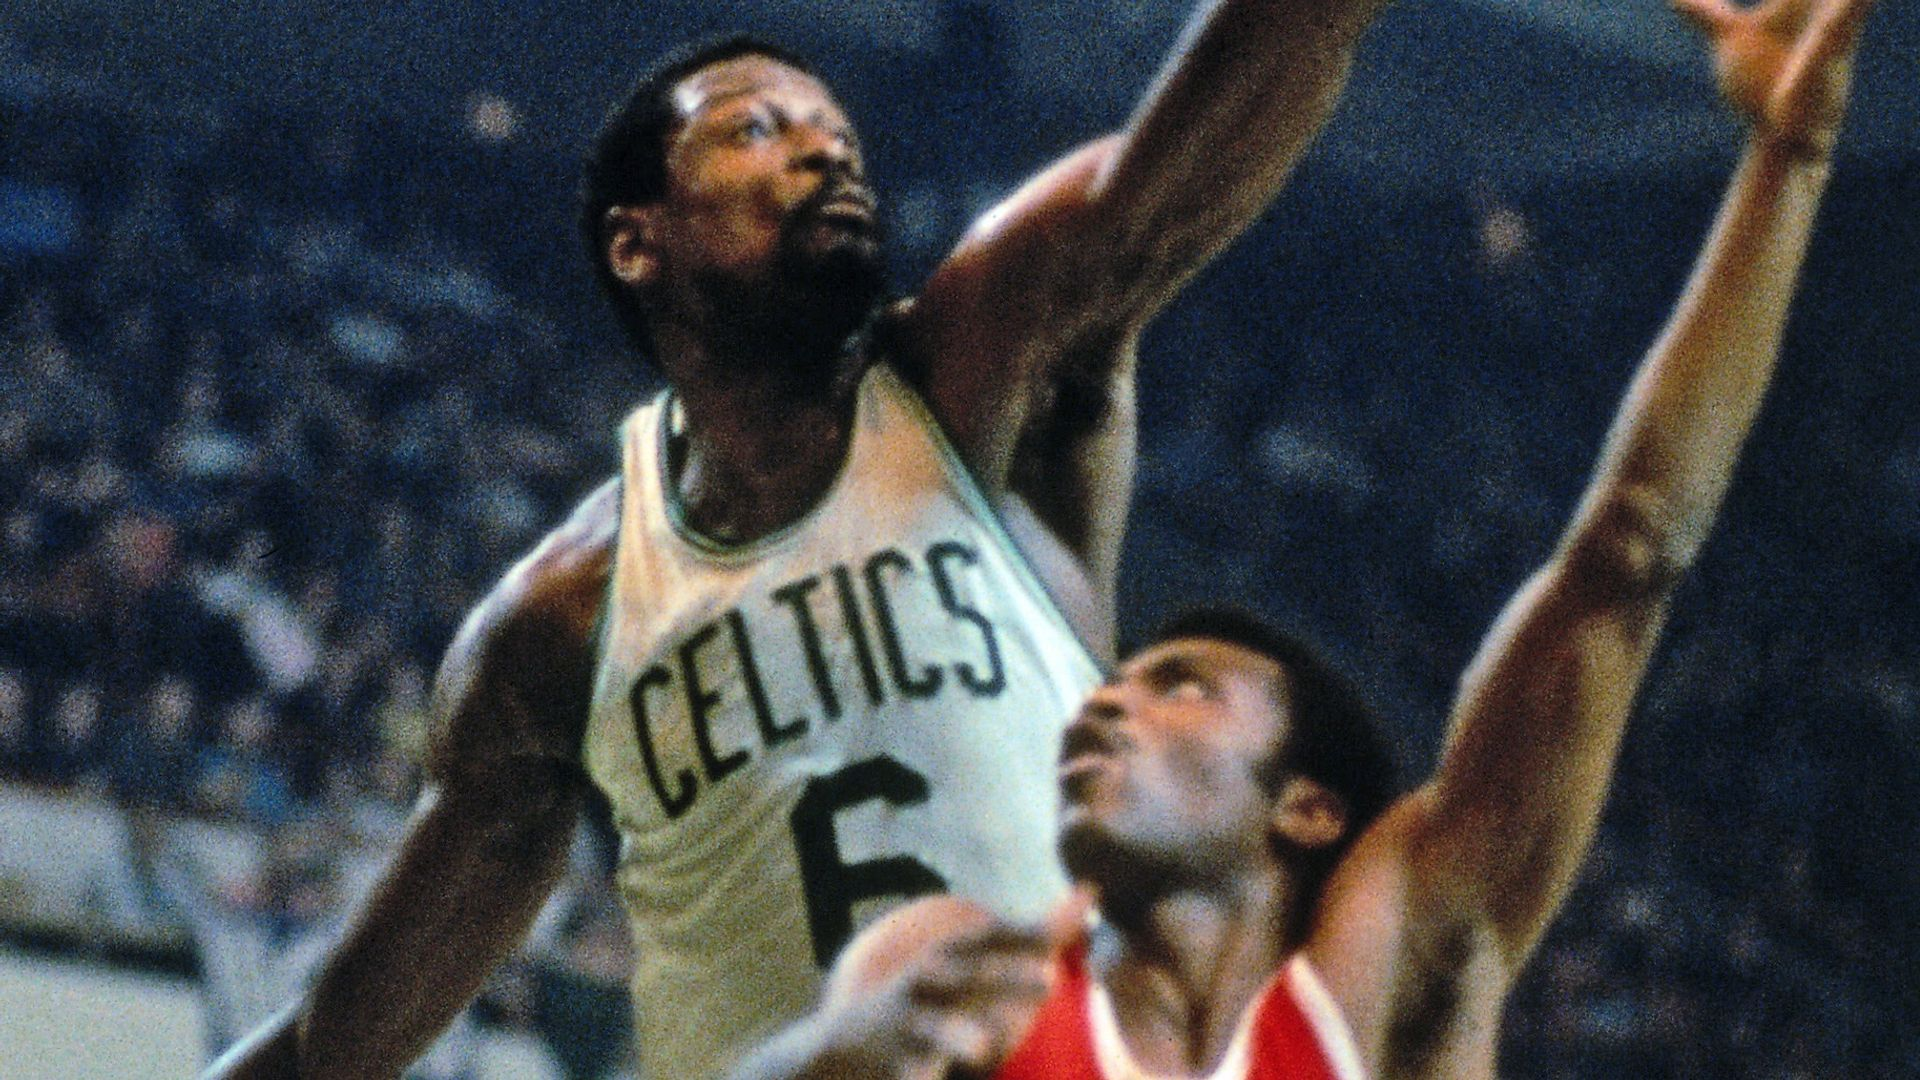 Iconic NBA numbers: #6 – Bill Russell, Dr J